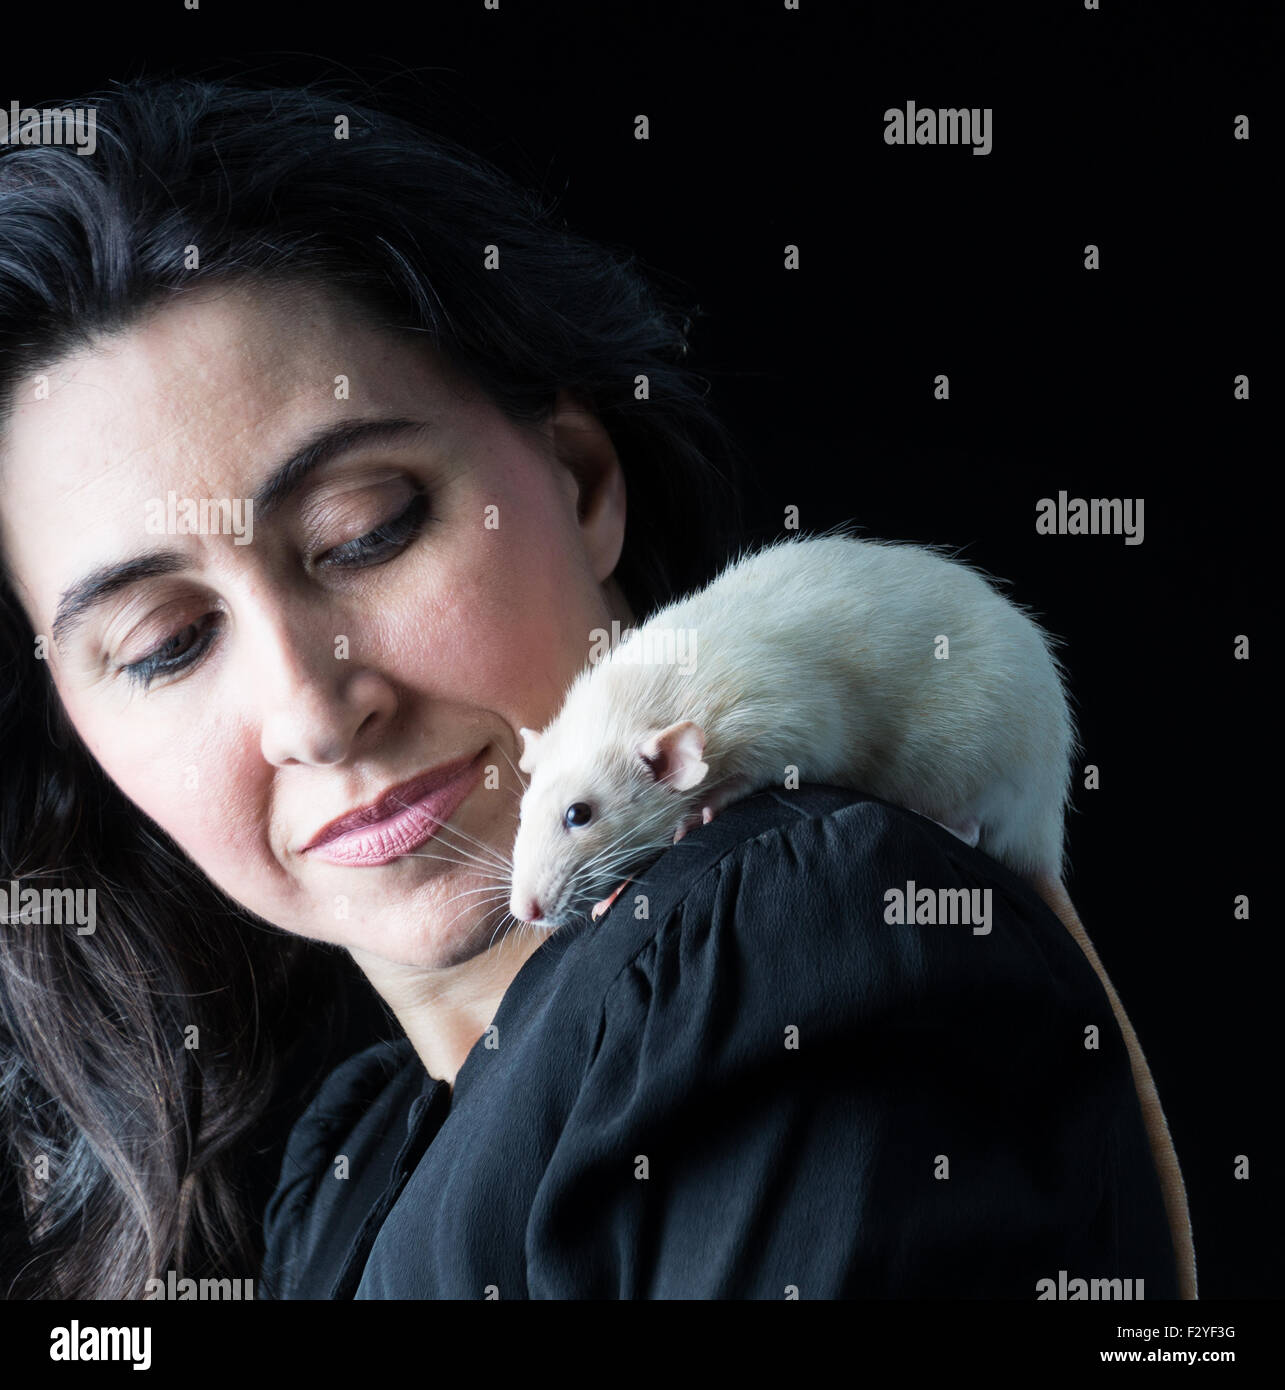 Woman in black standing with white rat on shoulder - Stock Image